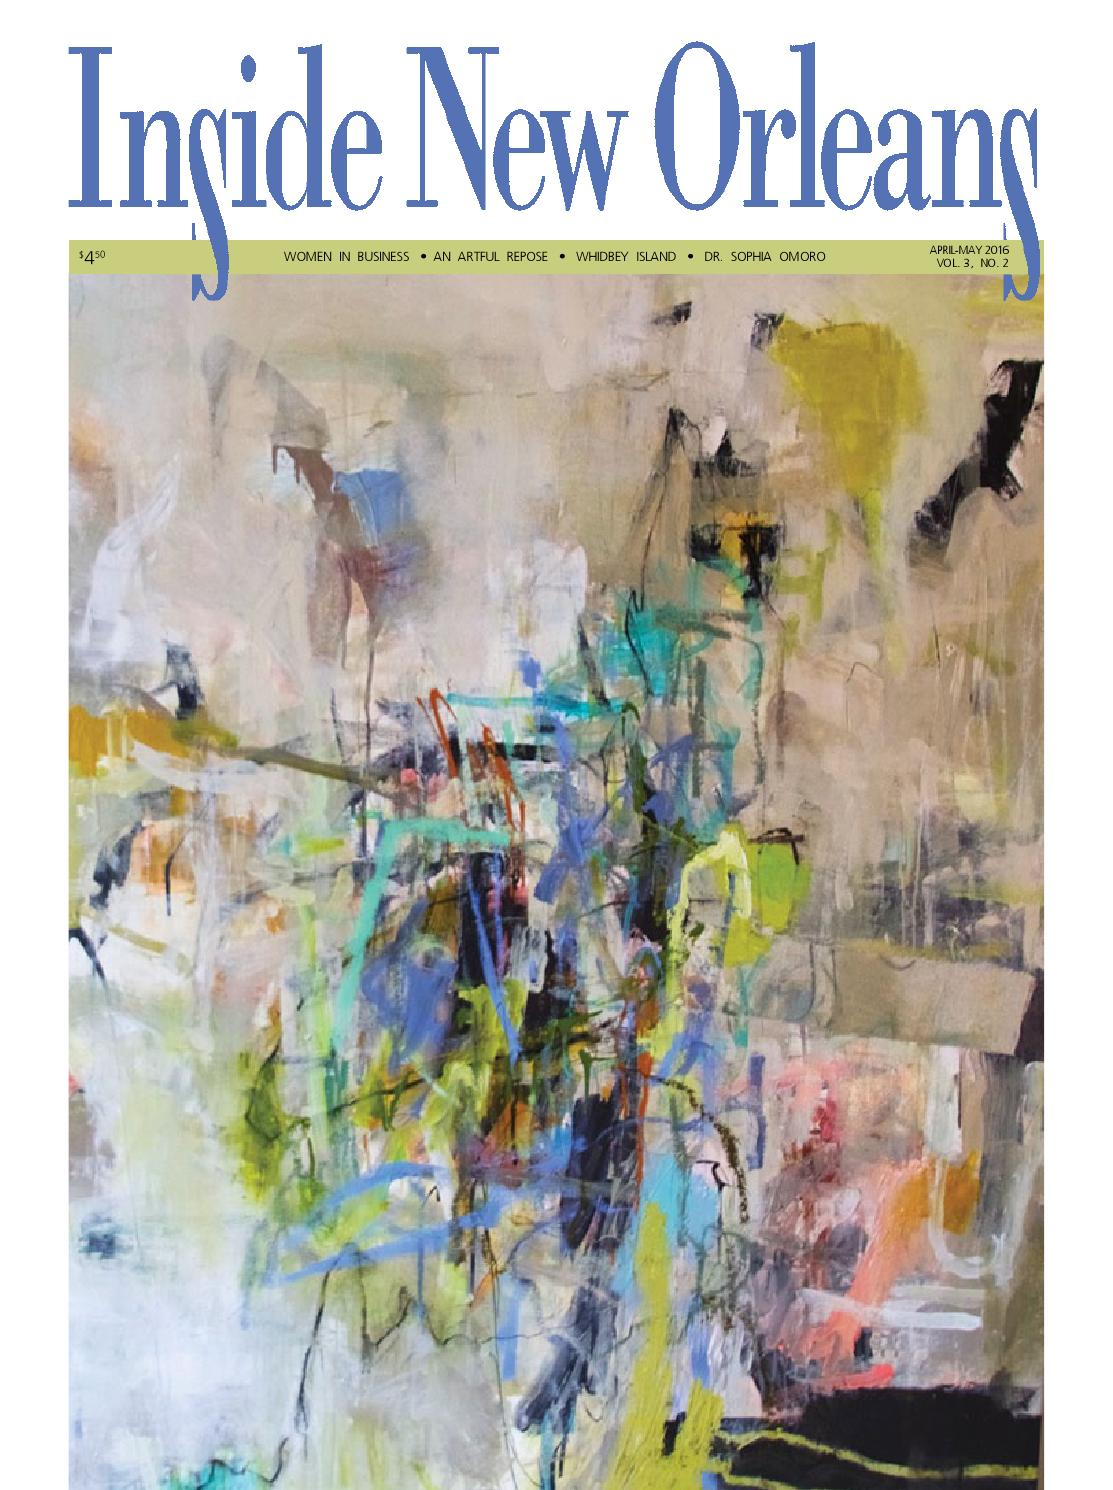 April May 2016 Issue Of Inside New Orleans By Publications Carondelet Orthopaedic Surgeons Kansas City Howrah Bridge Songs Free Issuu